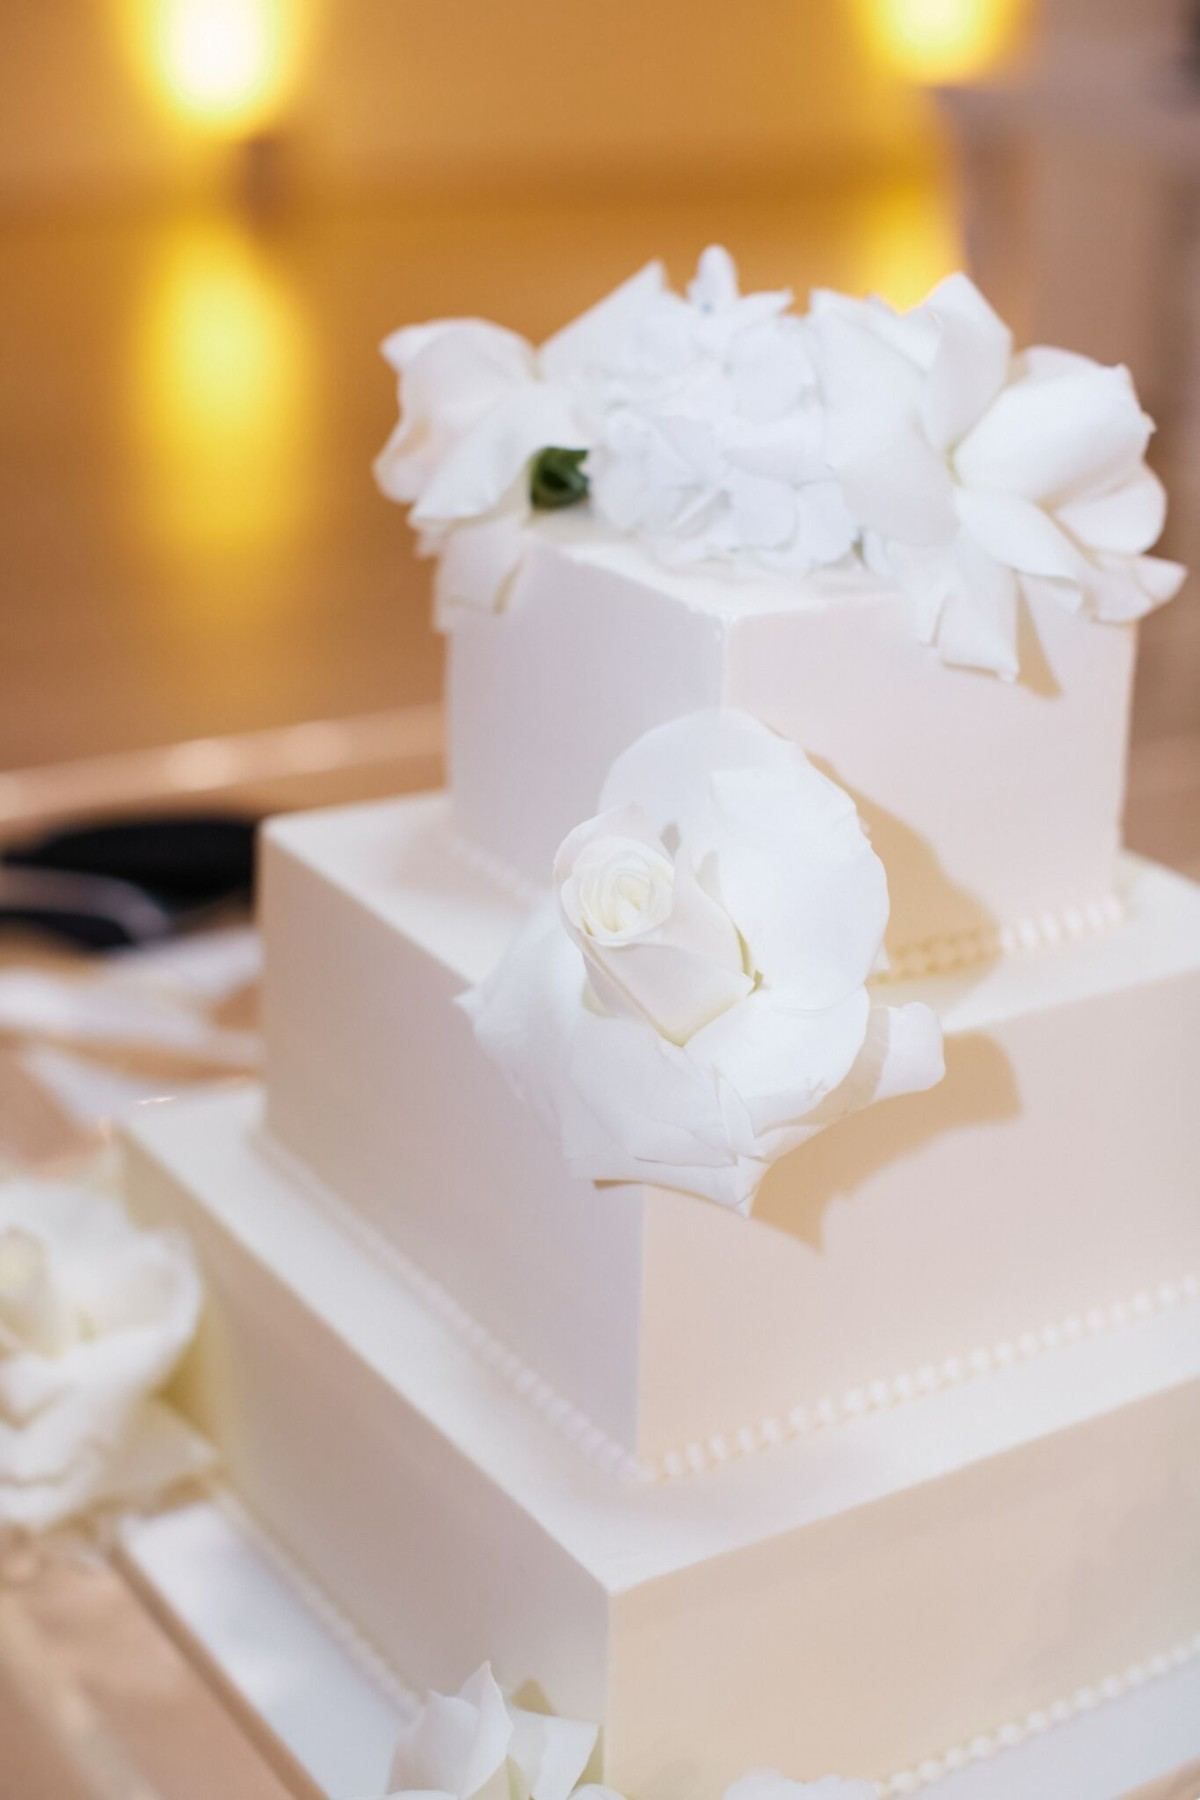 Wedding Cakes Archives - Elysia Root Cakes